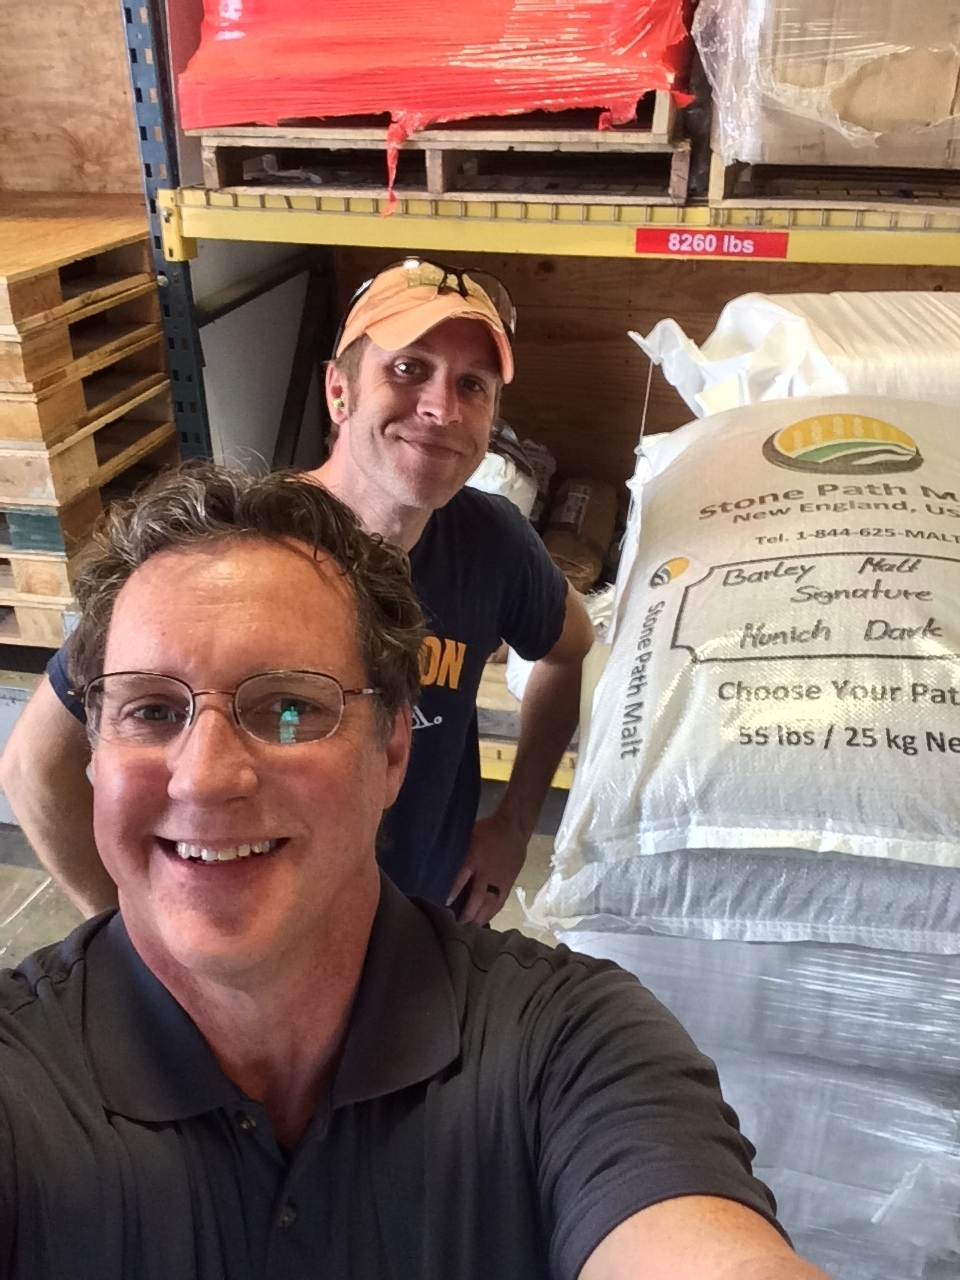 Ryan Thompson, Brewer at Harpoon takes a selfie with Mike and some Signature Munich Dark from Stone Path Malt